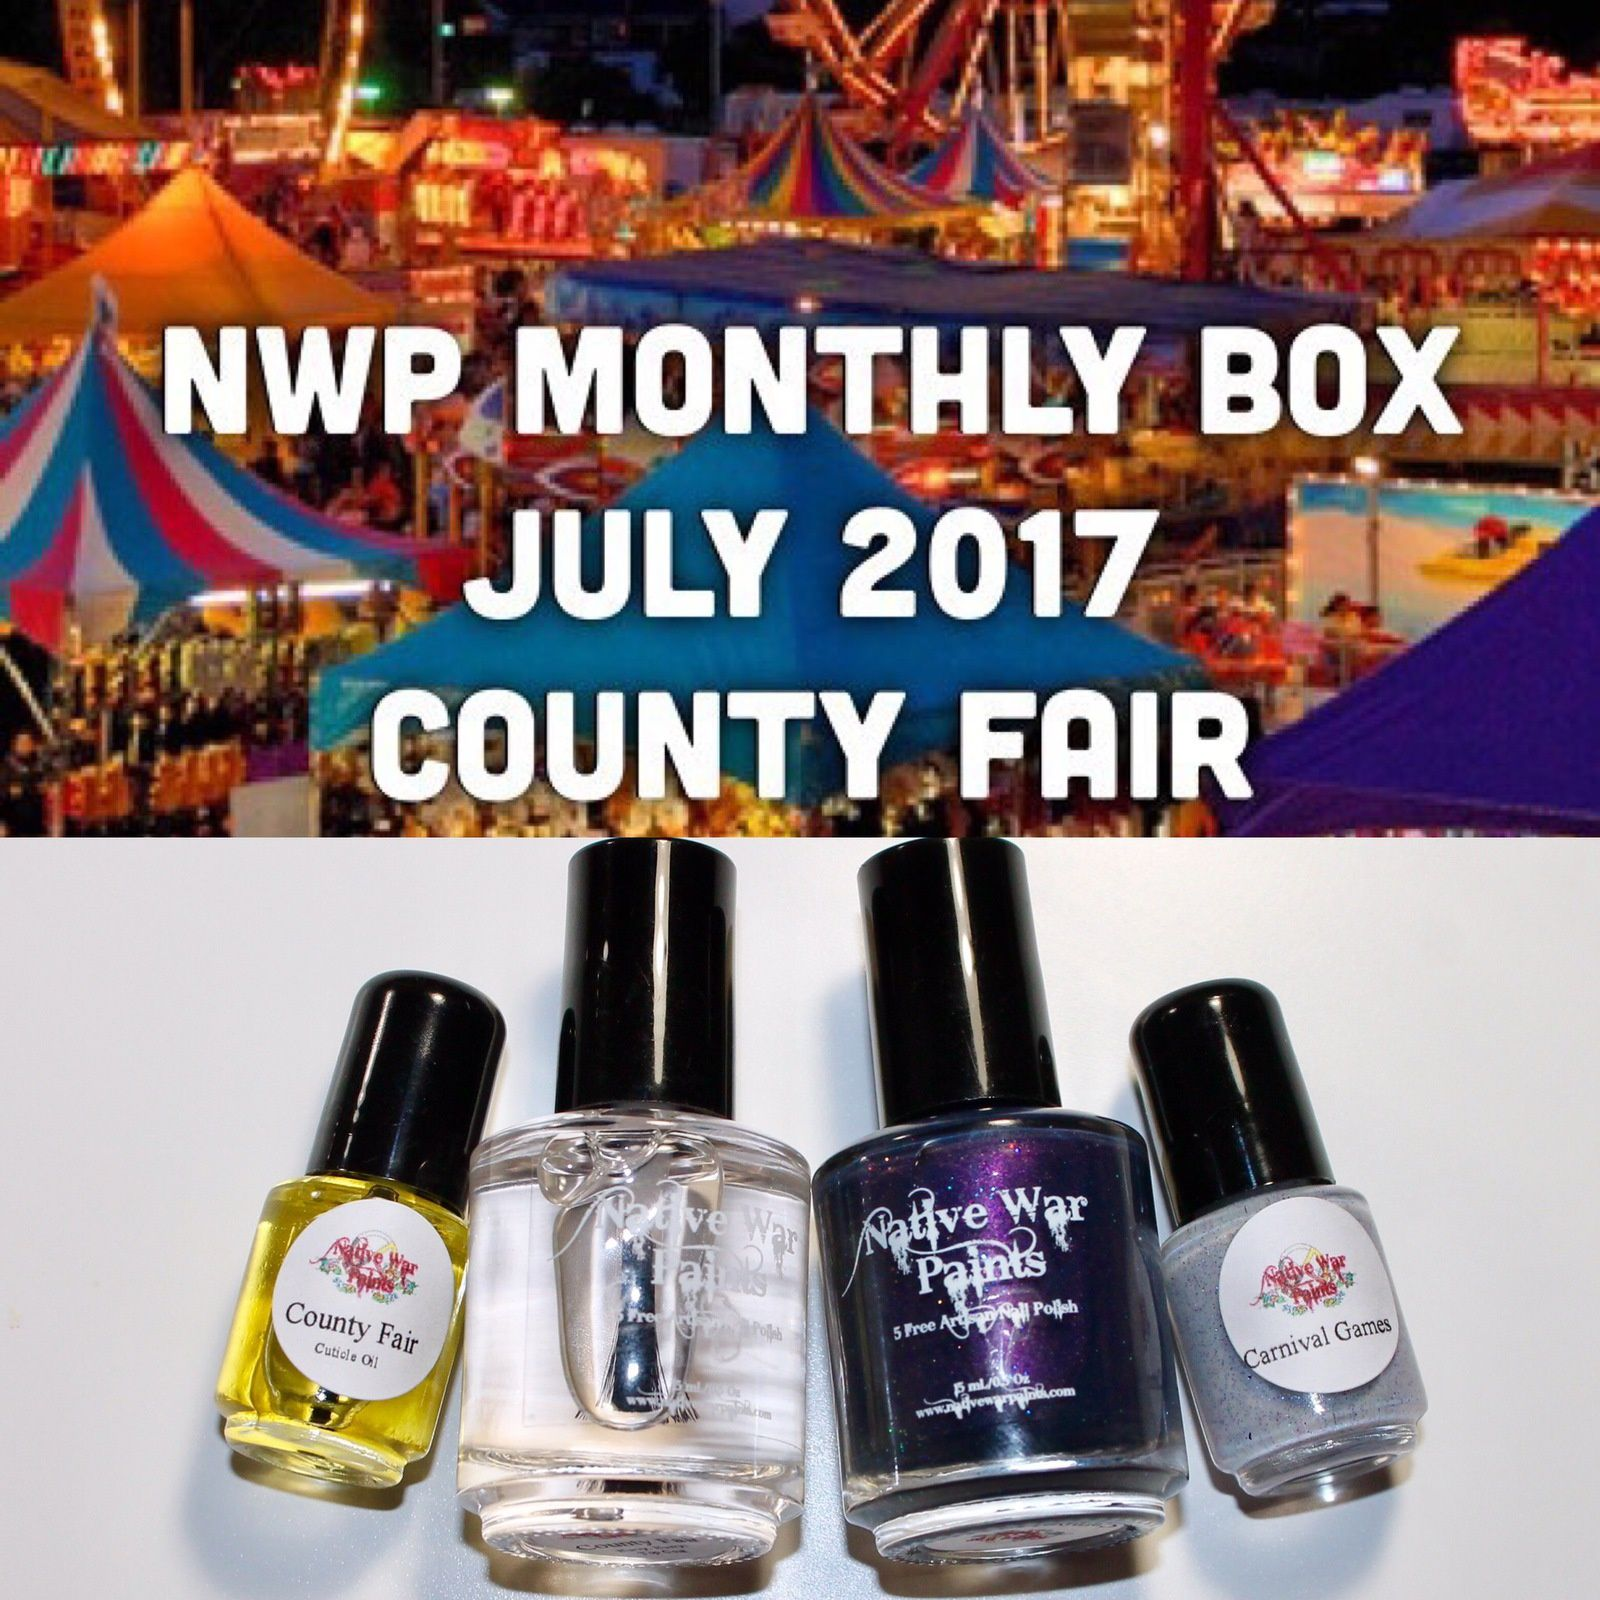 Native War Paints Monthly Box - July 2017 - County Fair